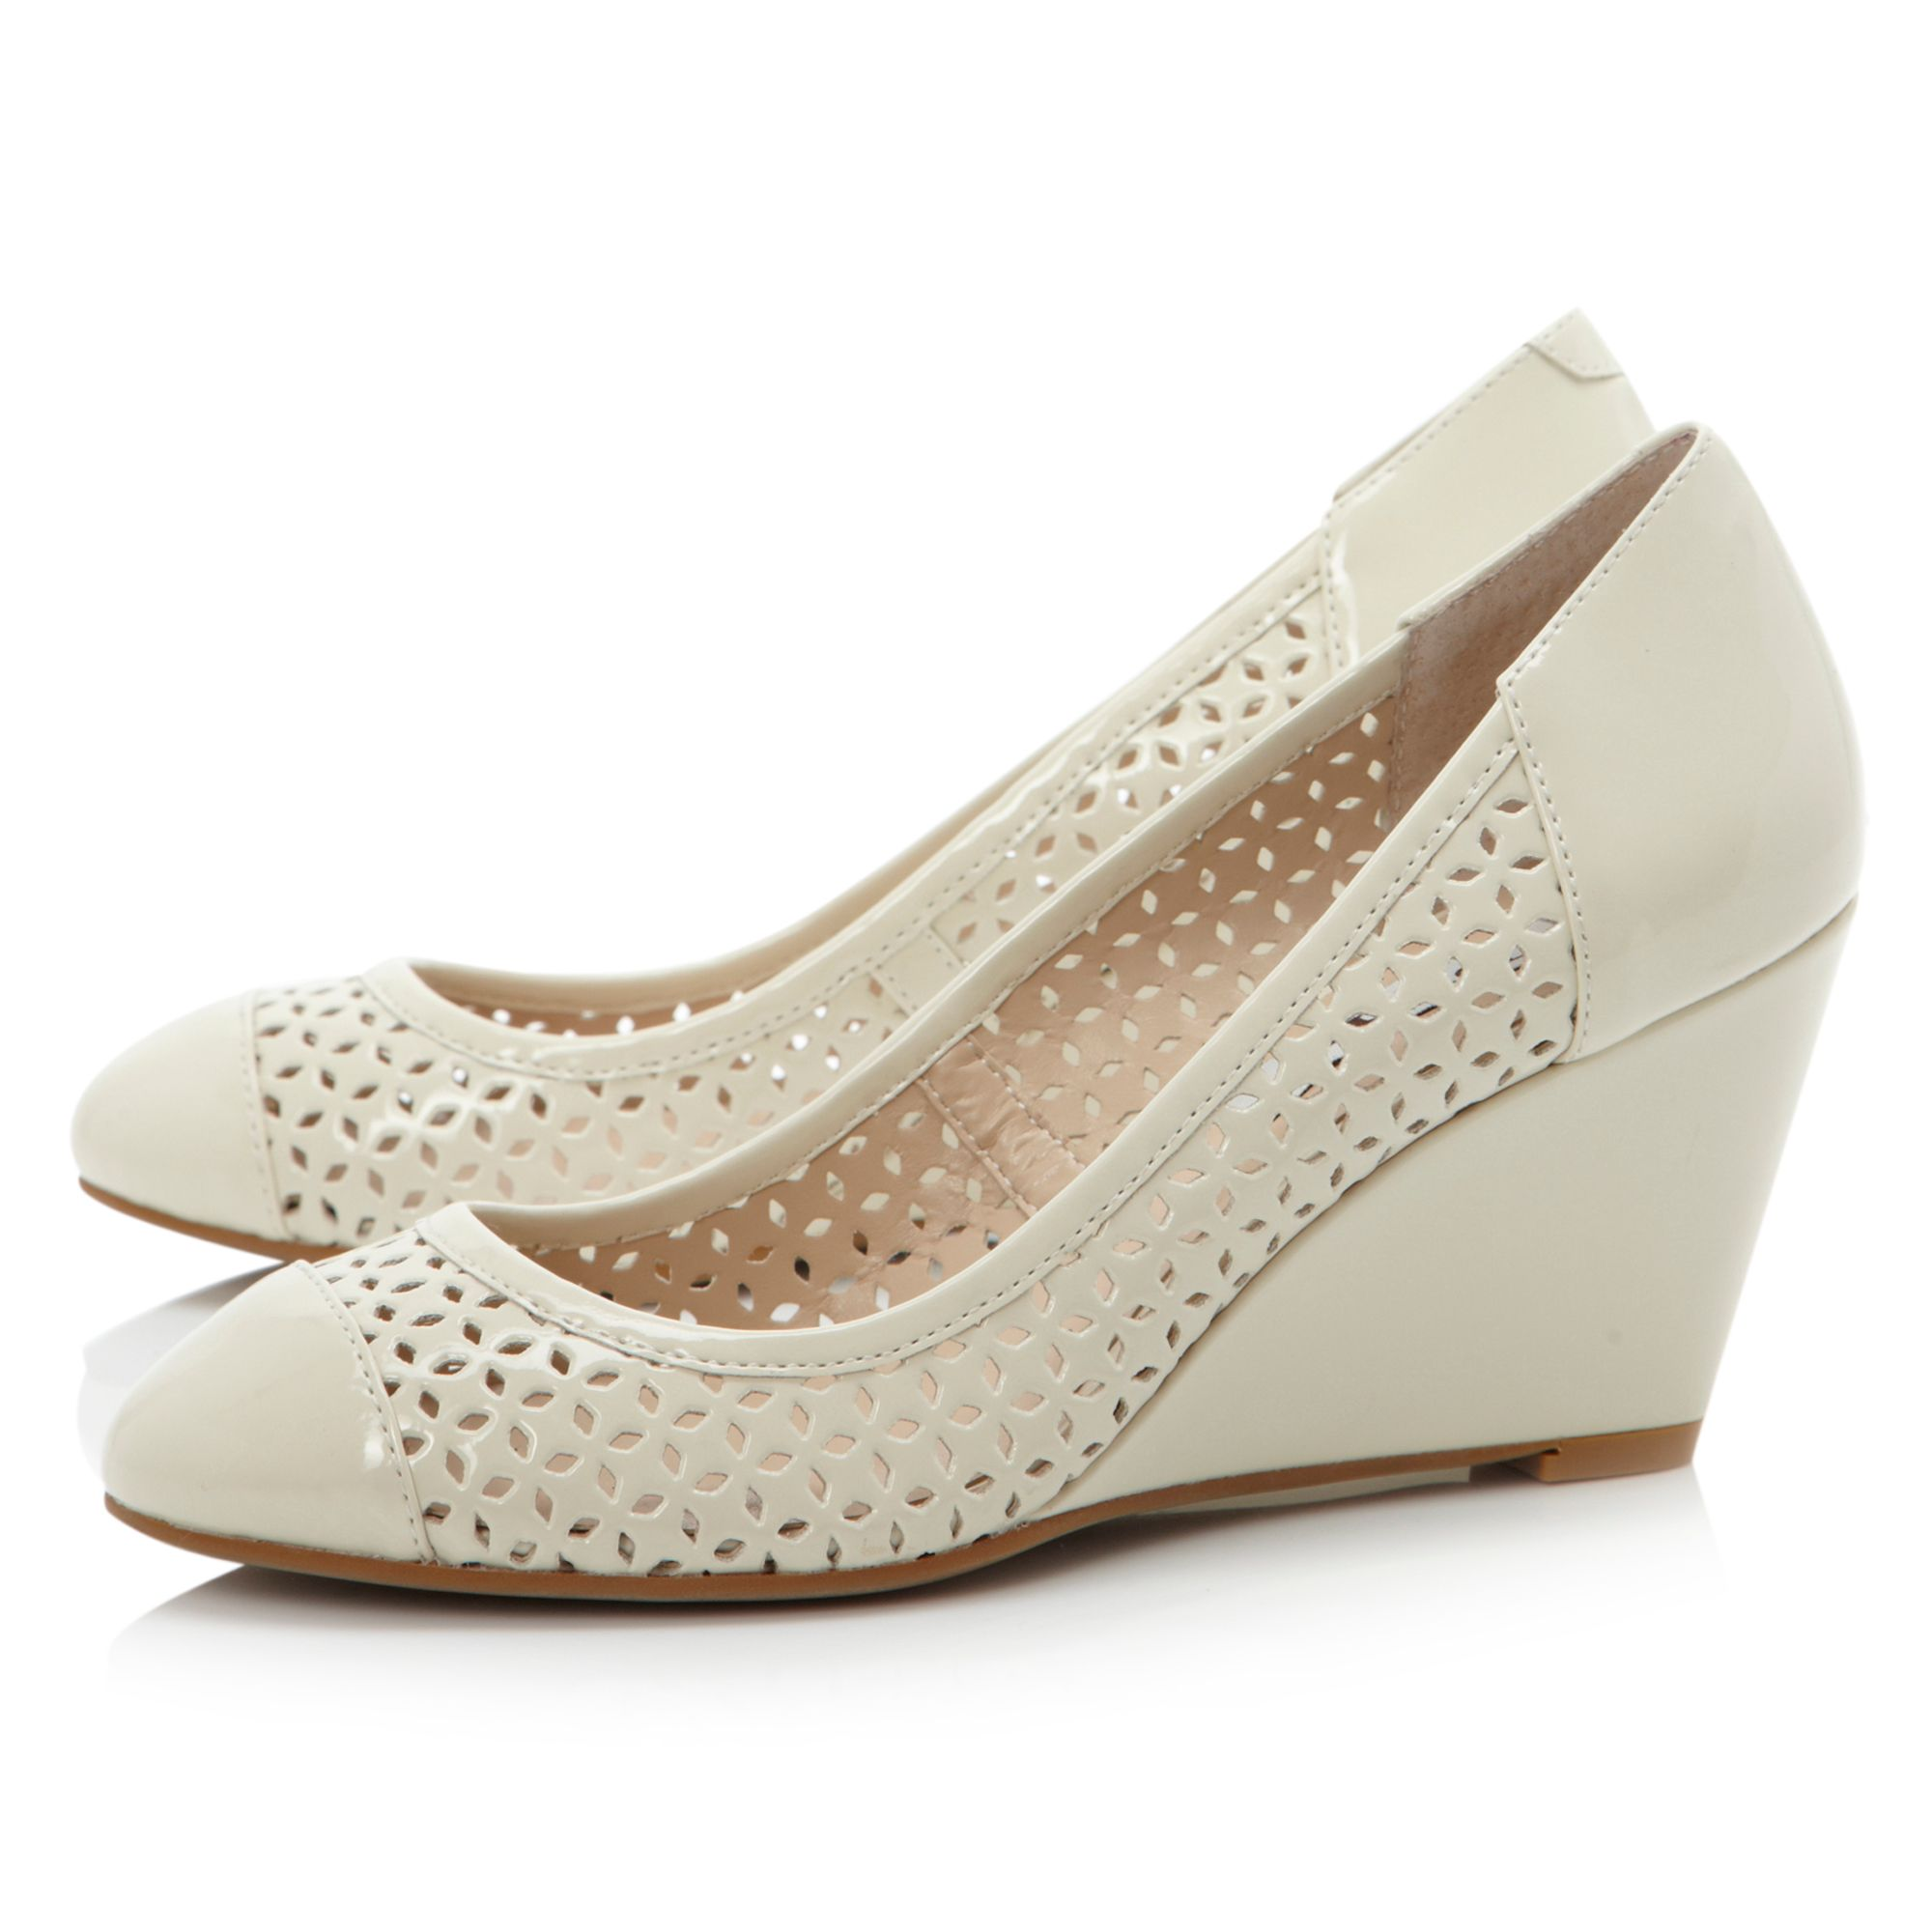 Antics laser cut wedged court shoes